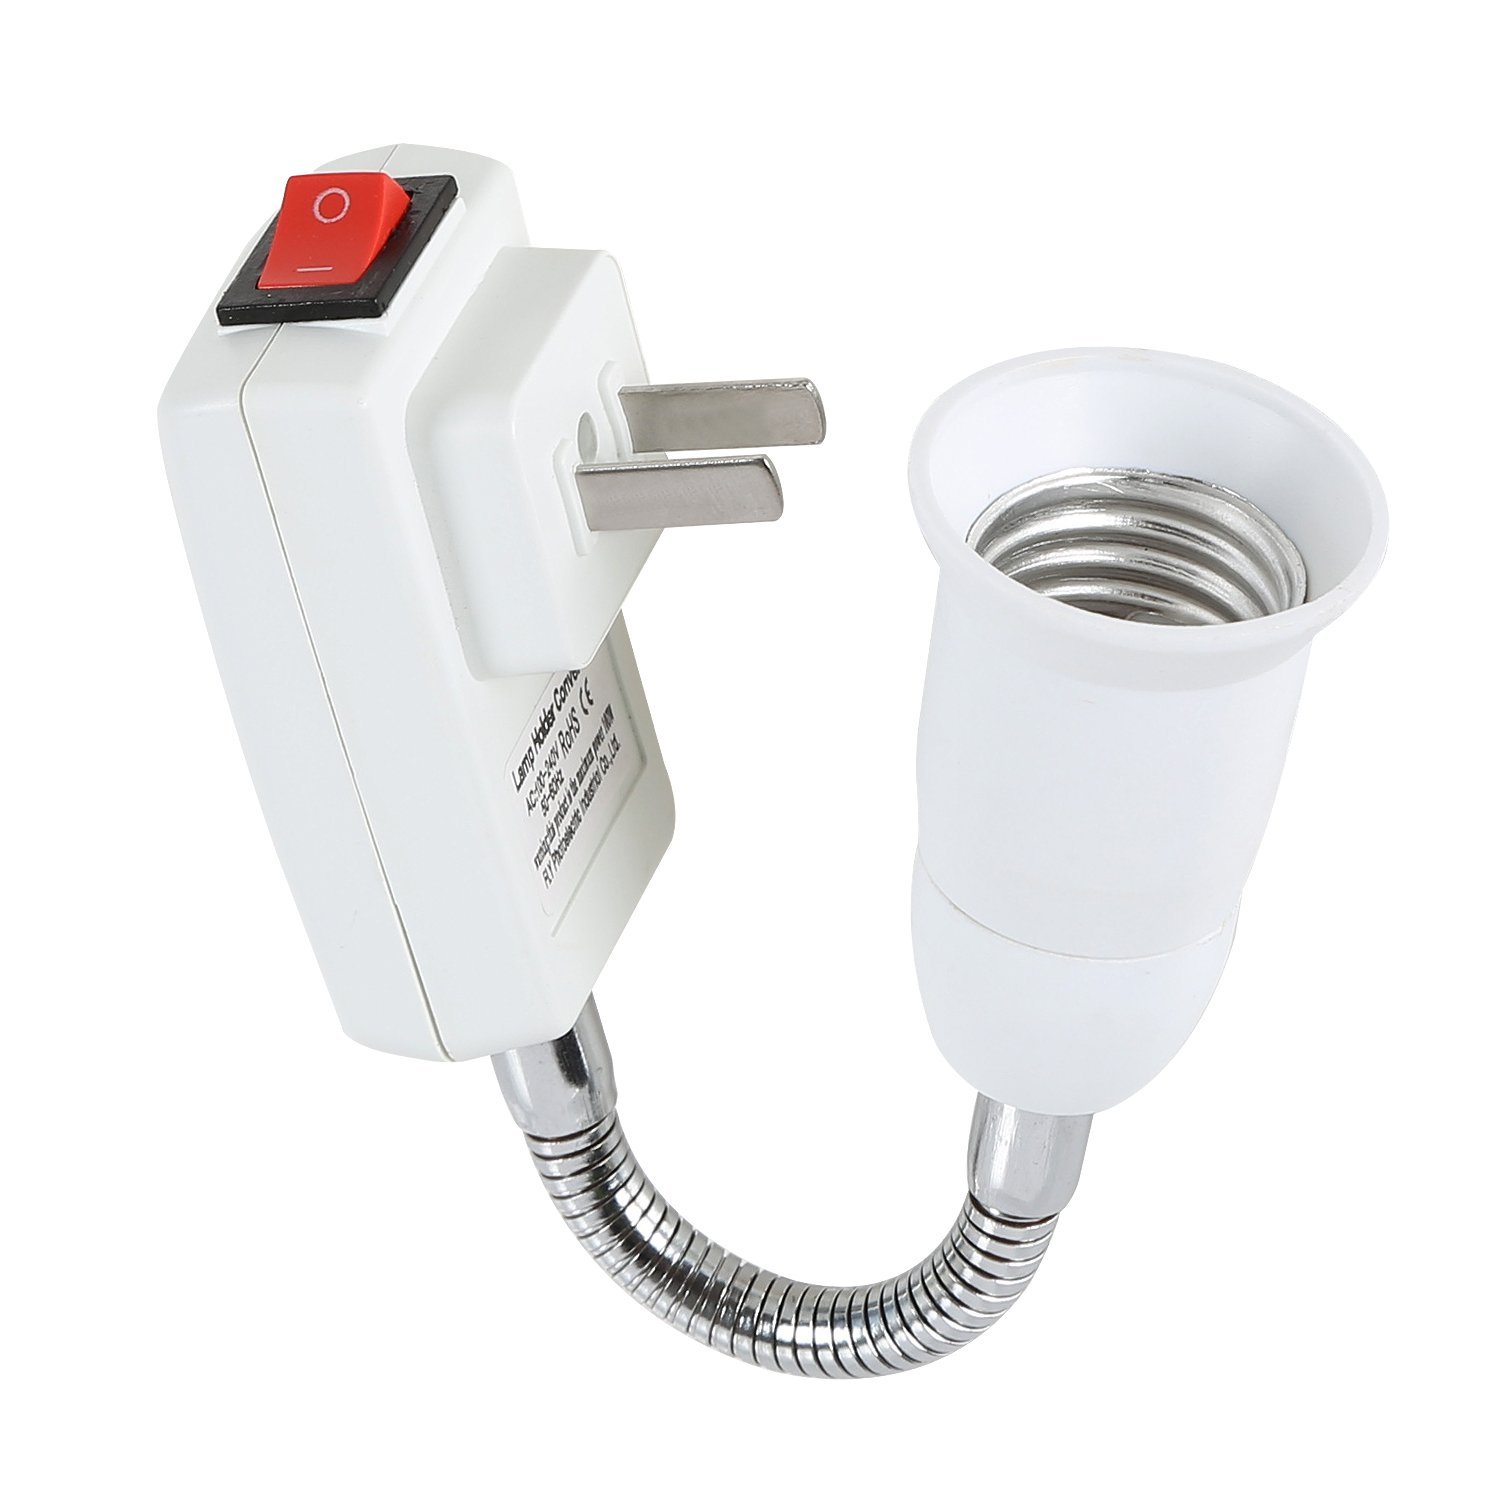 Electop E27 Socket Adapter with On/Off Switch to US Plug, Flexible Extension Lamp Bulb Holder Converter